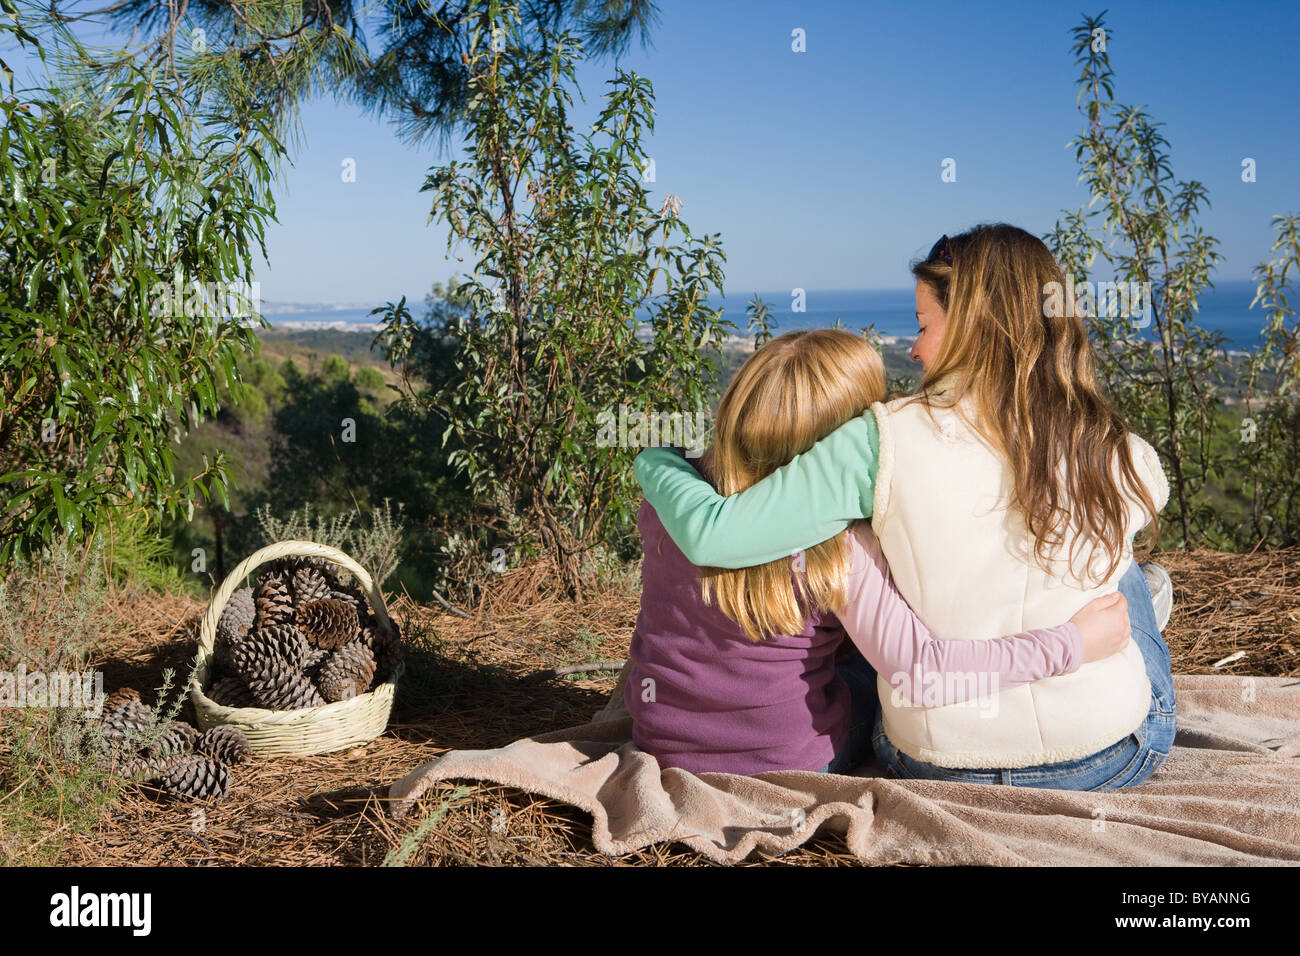 Mother and daughter hugging rural scene - Stock Image